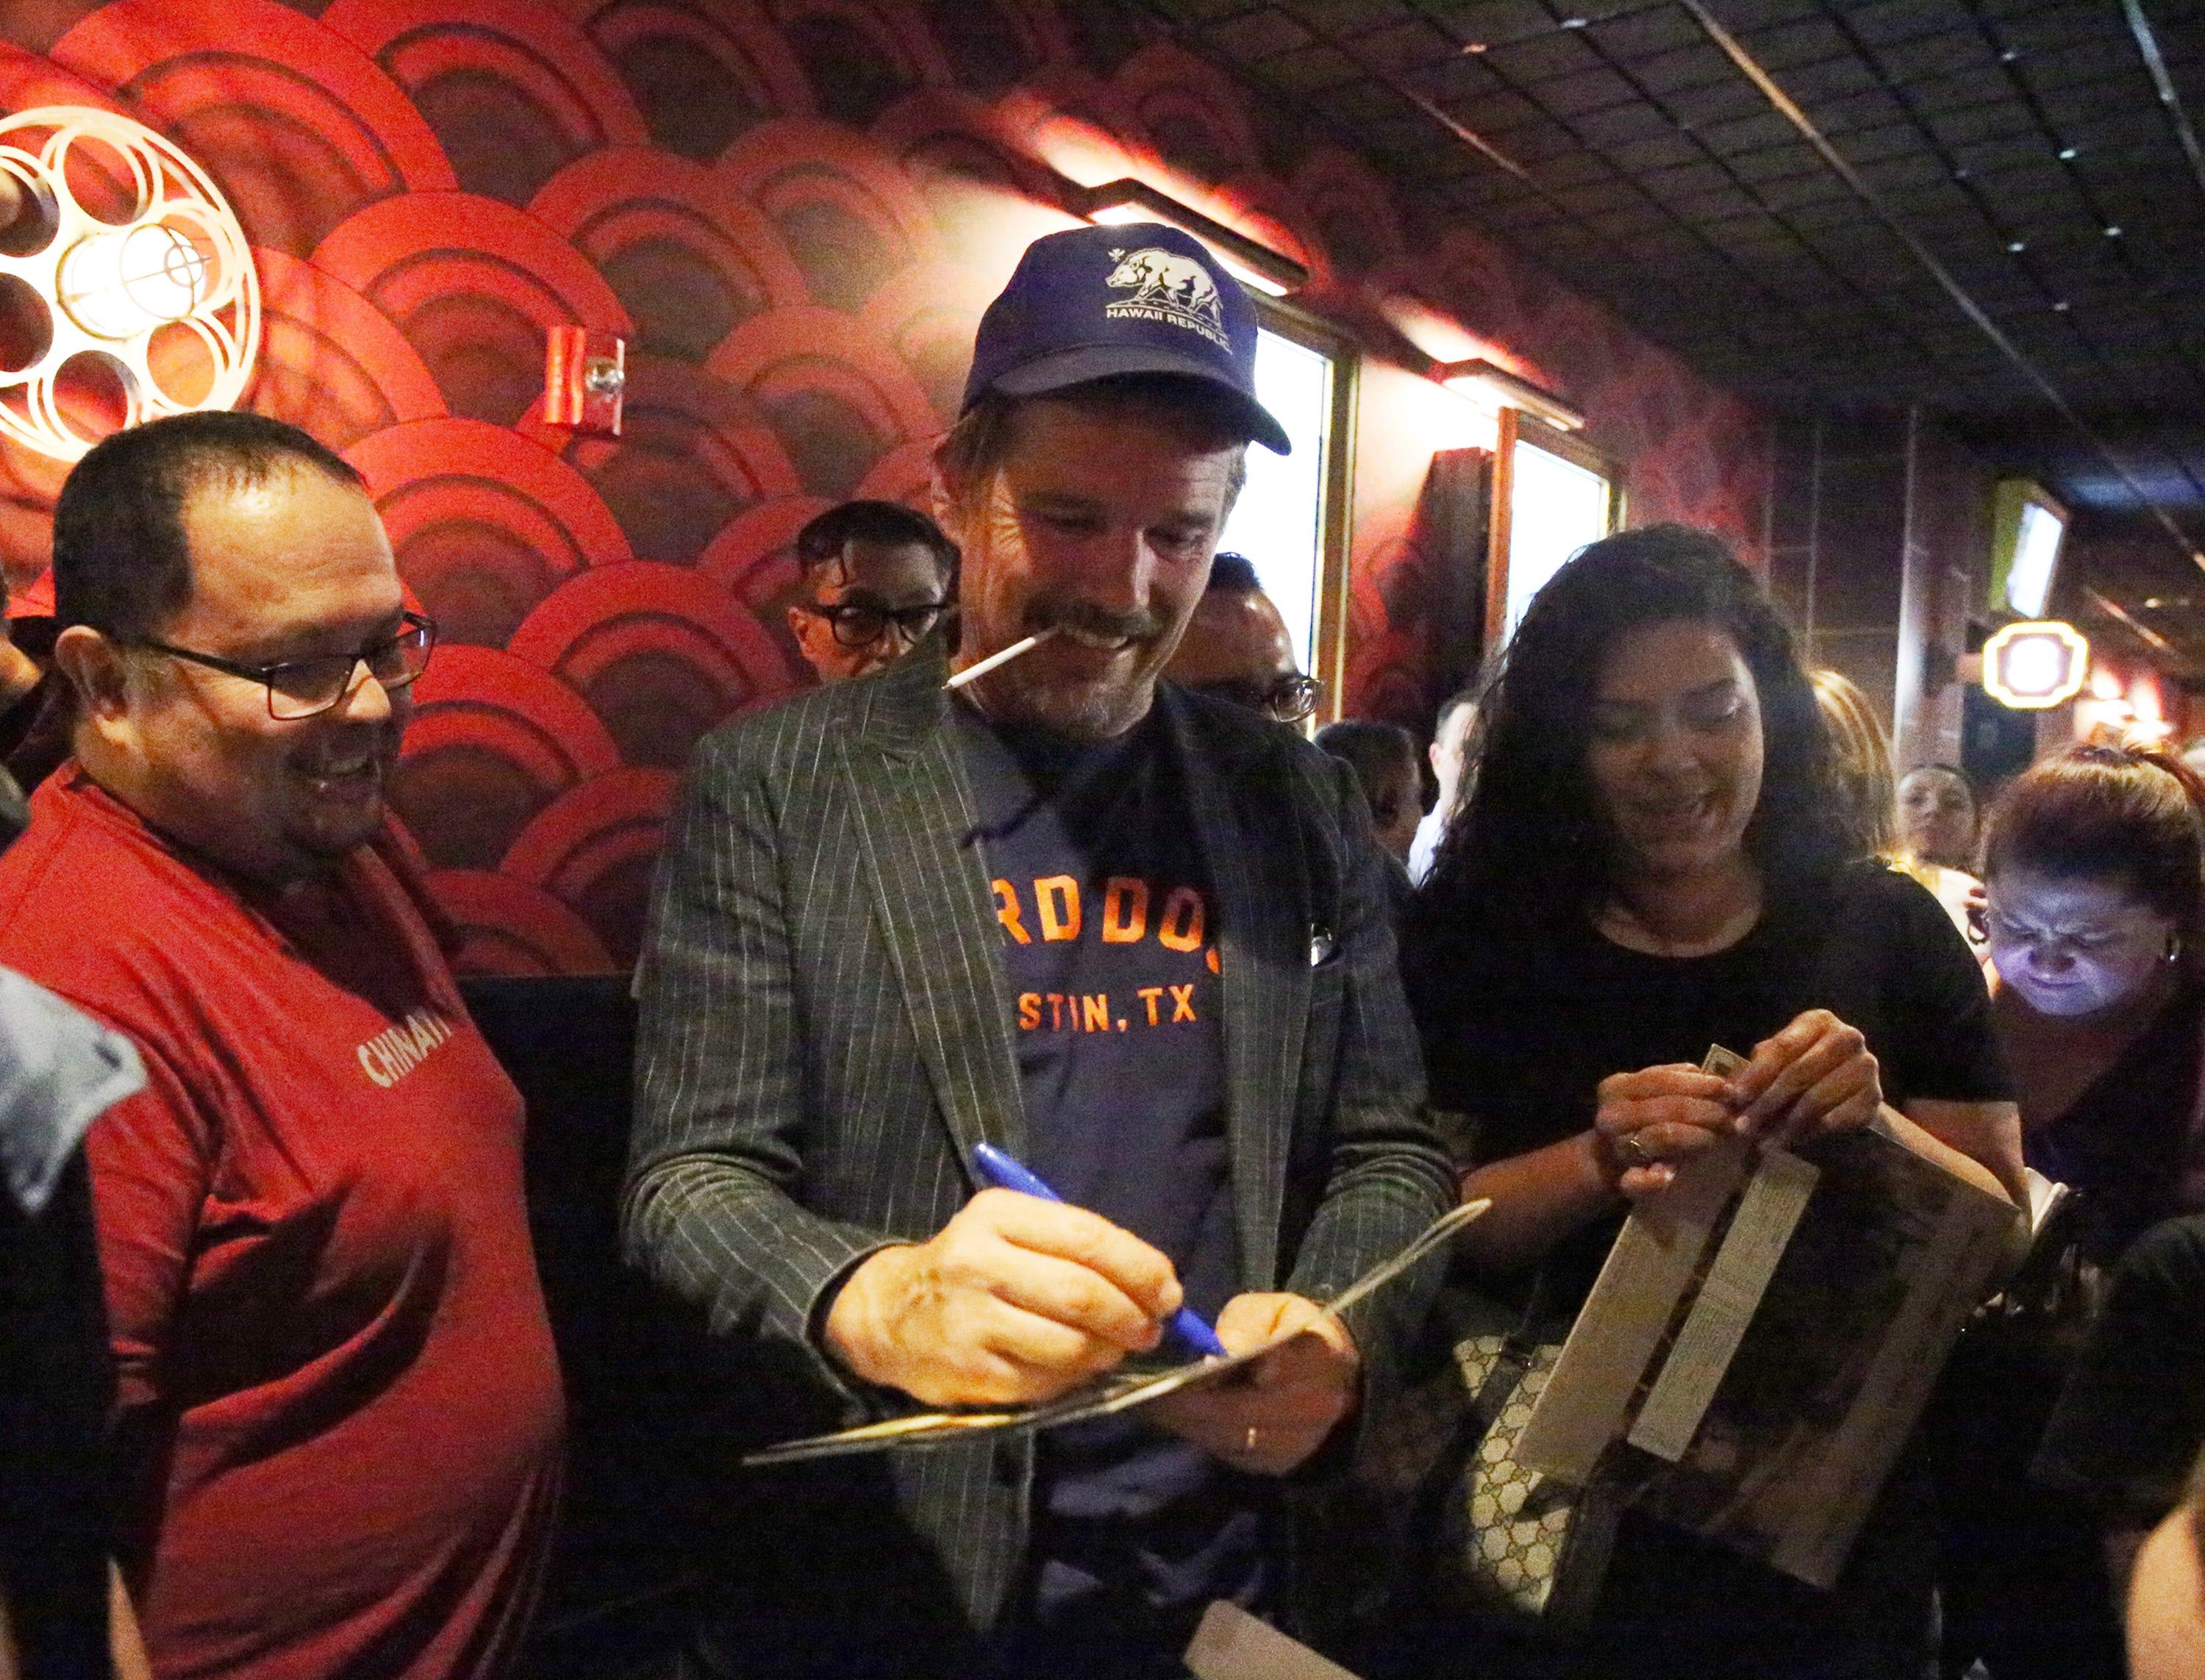 Movie fans get autographs from actor and director Ethan Hawke, center, following the screening of the movie 'Blaze' Tuesday night at Alamo Drafthouse in West El Paso. Hawke directed the movie, based on the life of country Texas musician Blaze Foley.